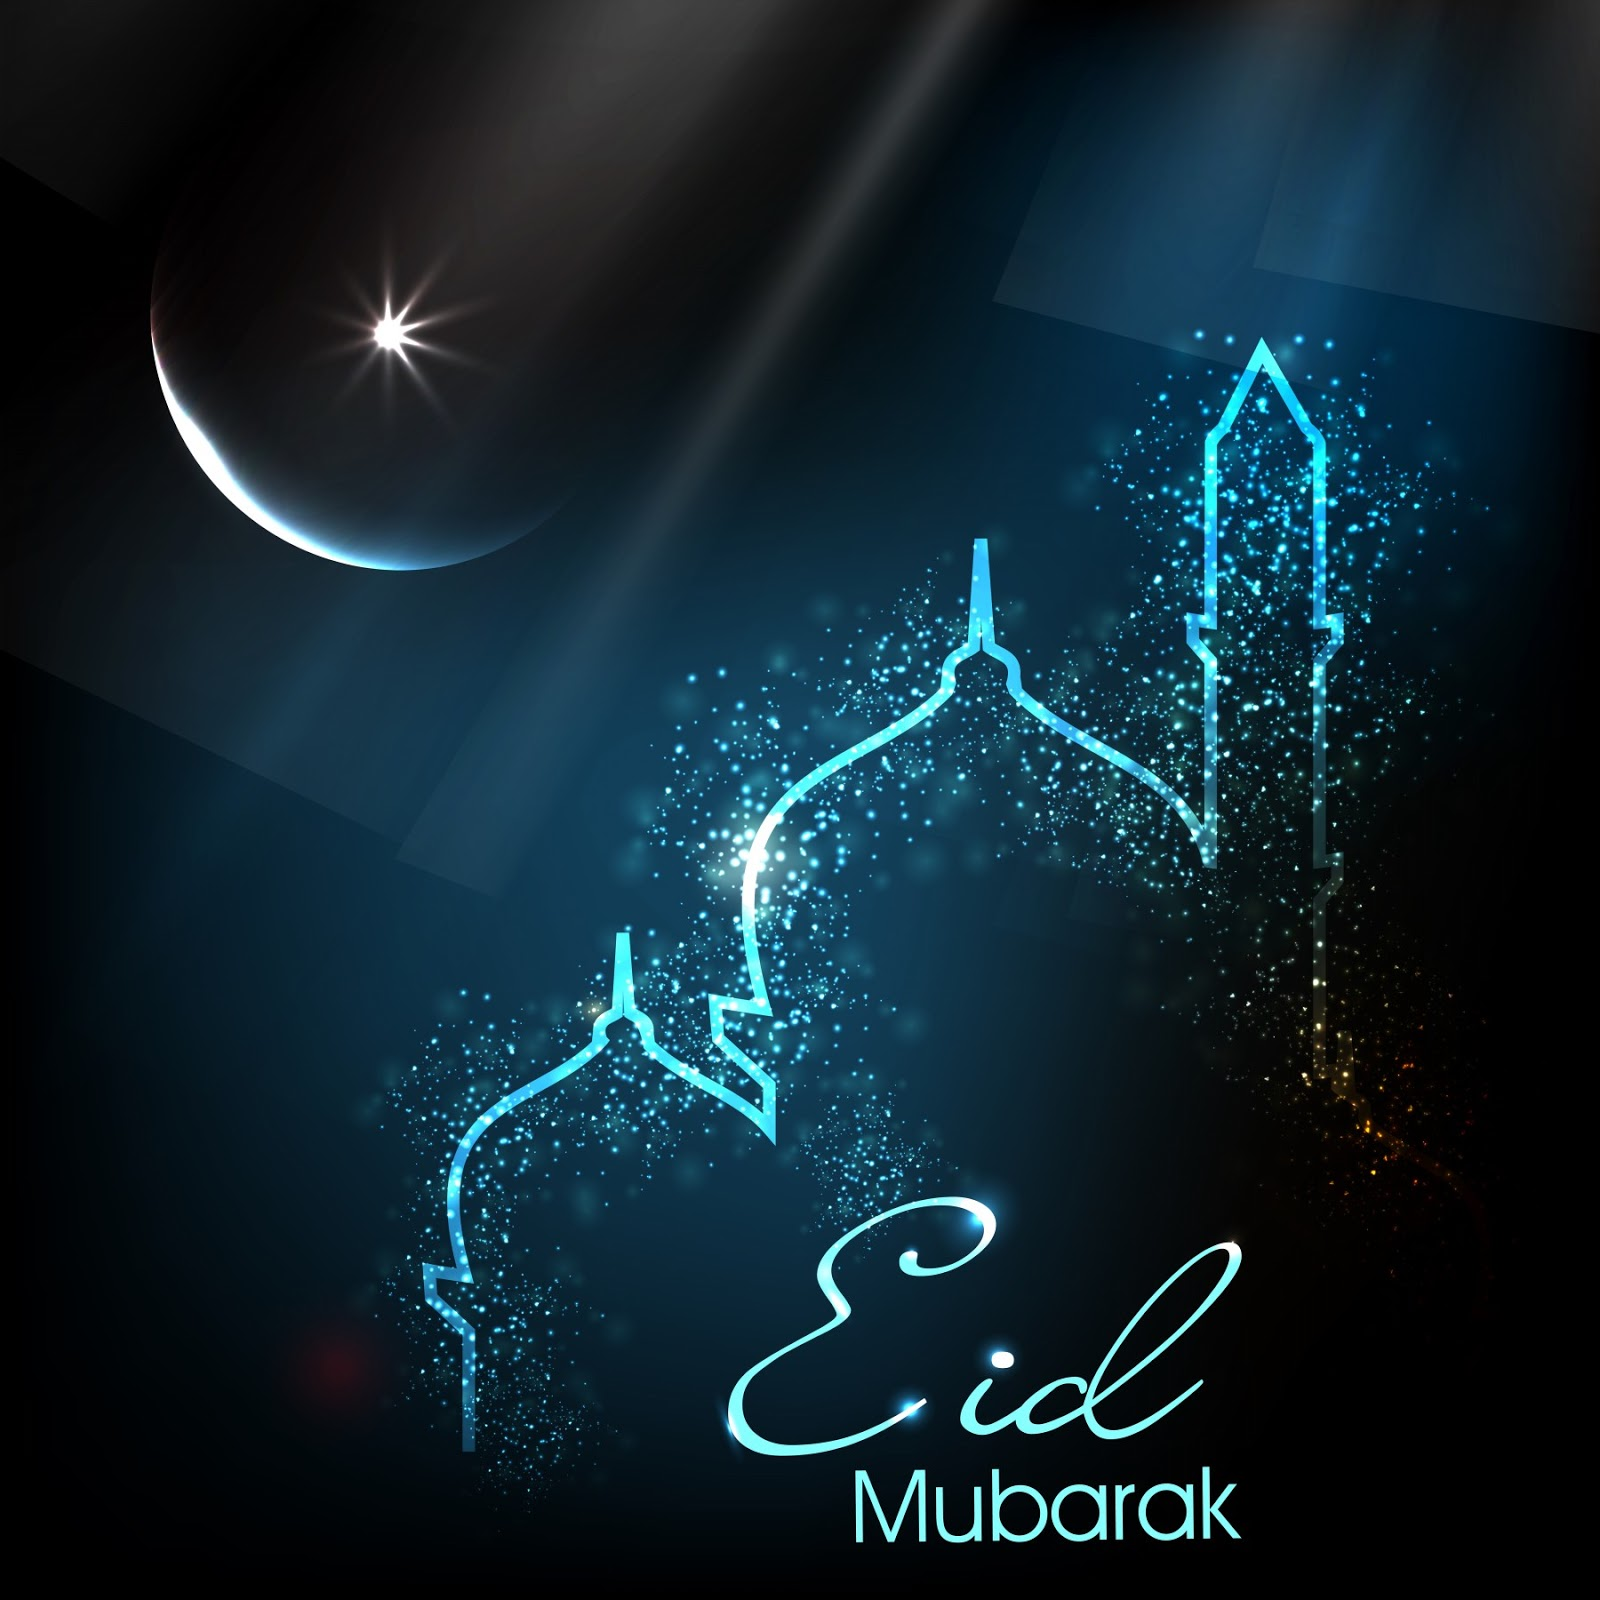 Happy eid mubarak 2016 photo images wishes cards sms and messages kristyandbryce Images